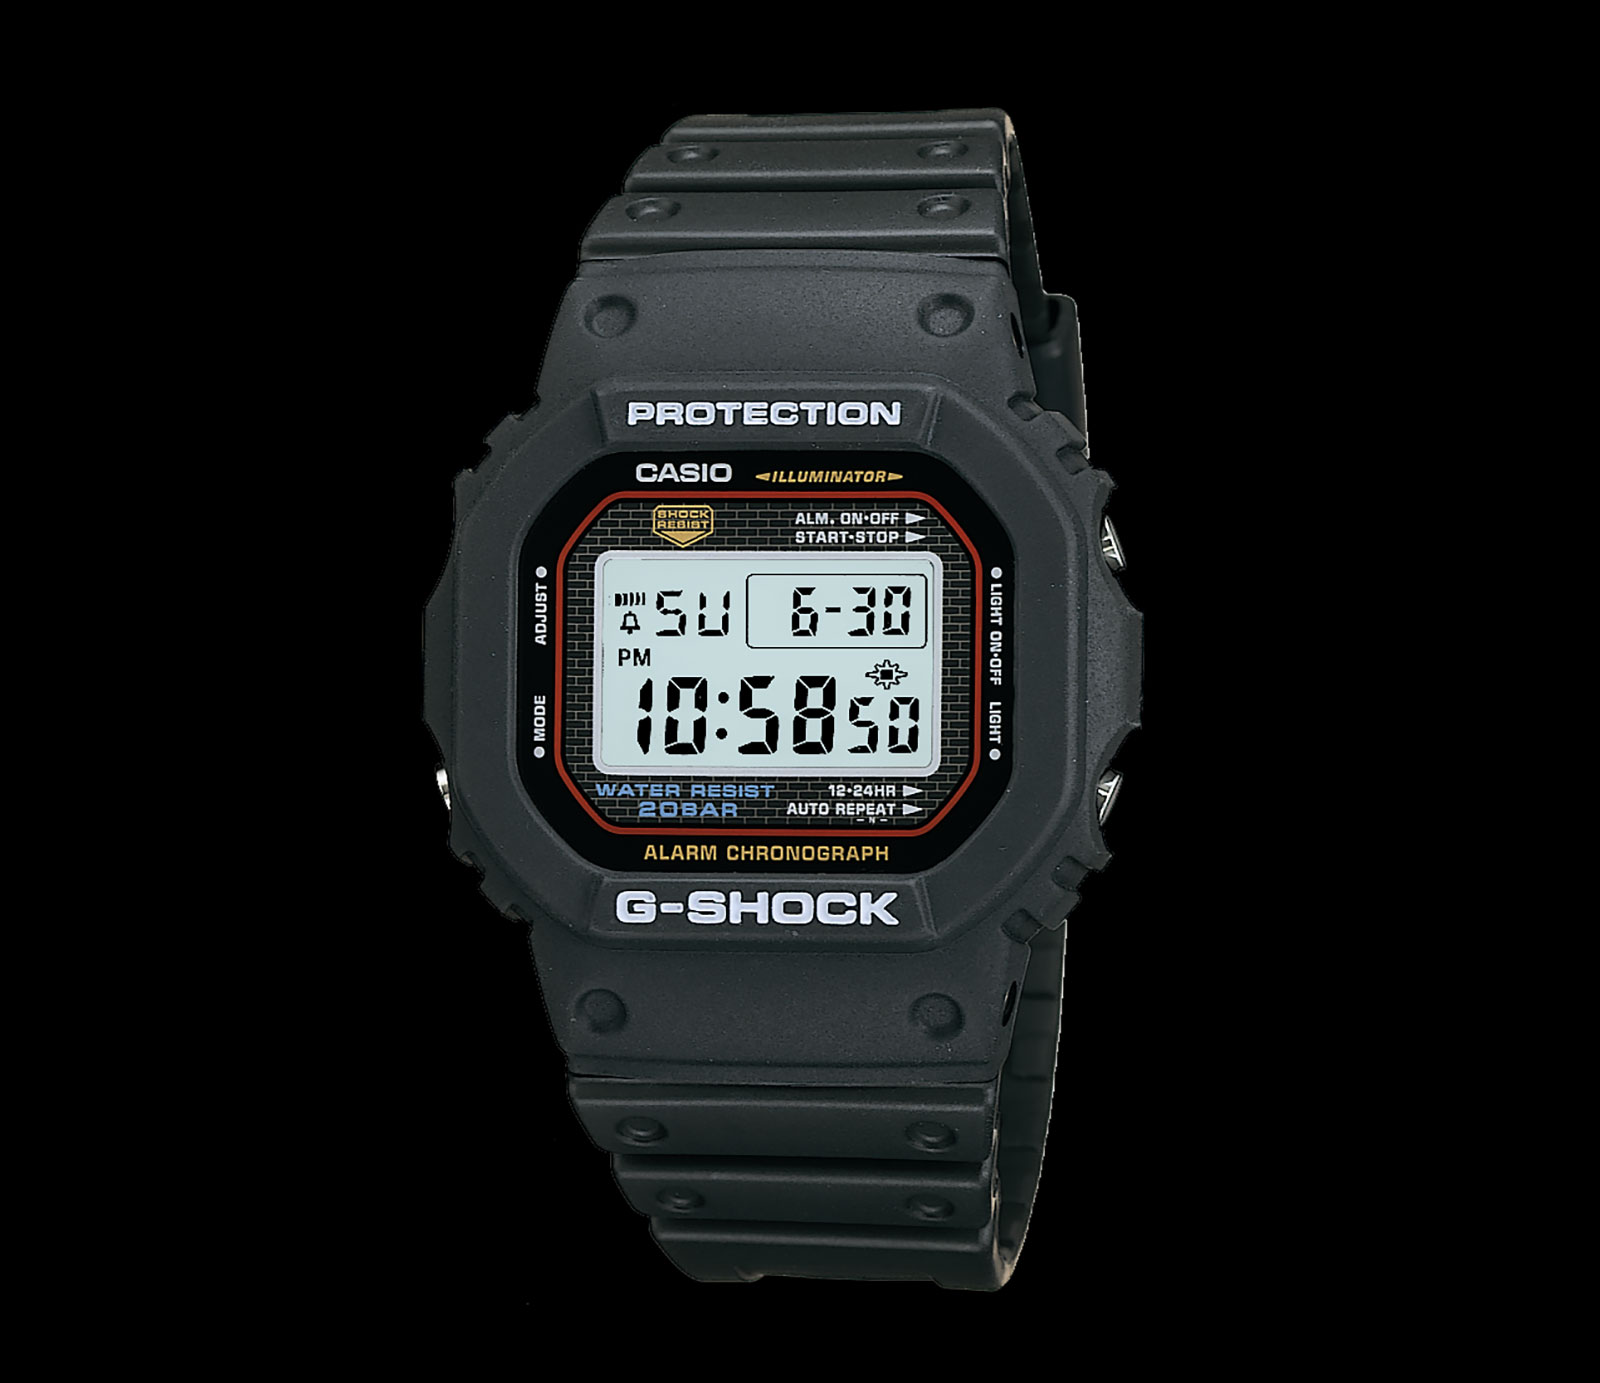 Casio first g shock DW-5000C